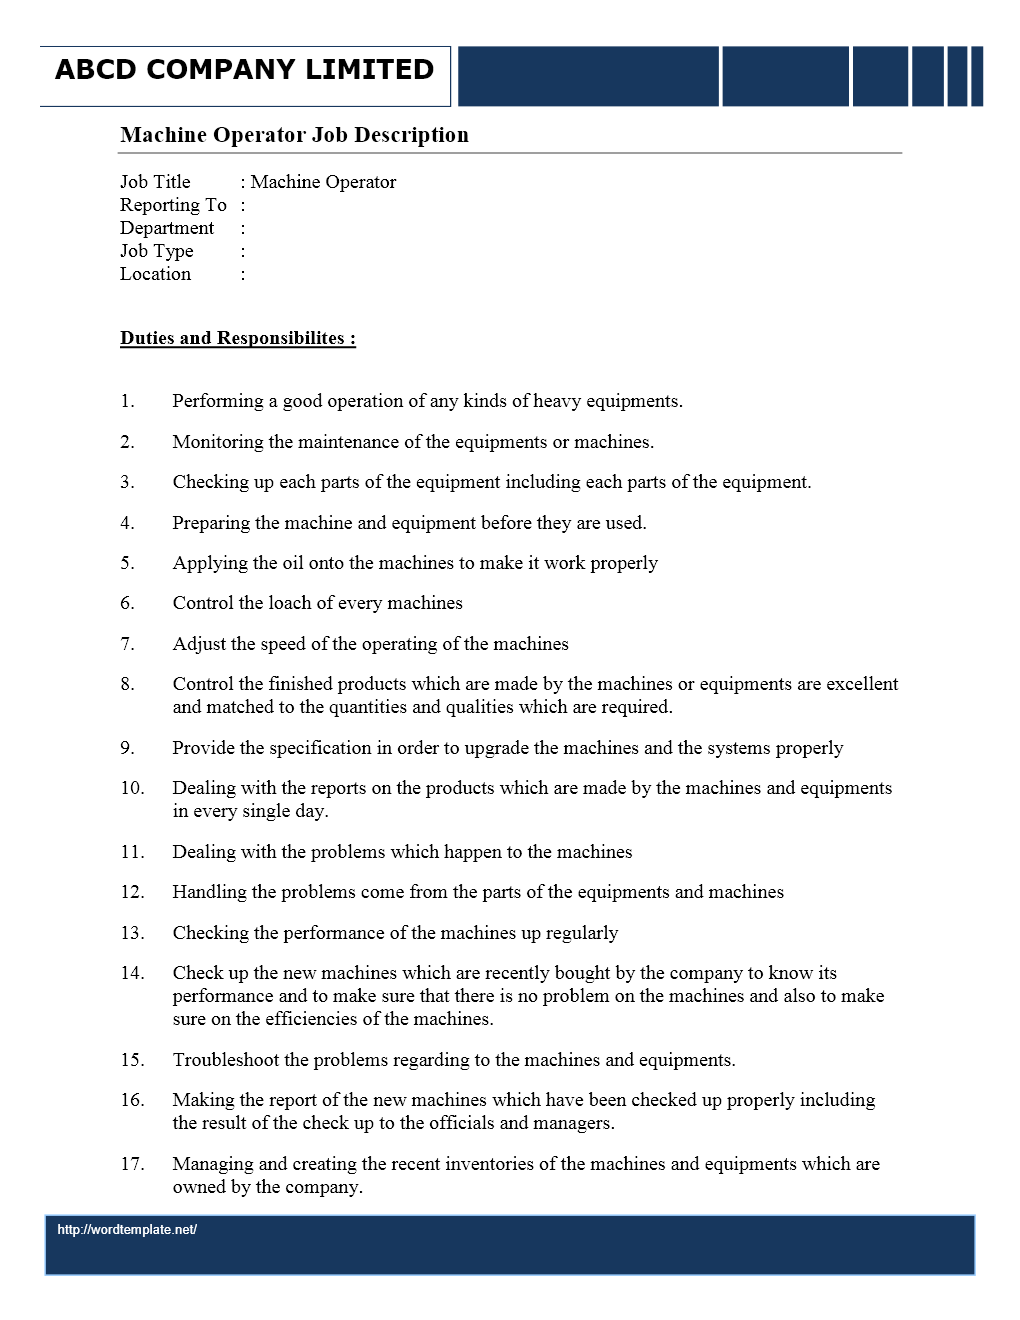 machine operator job description wordtemplates net job description machine operator